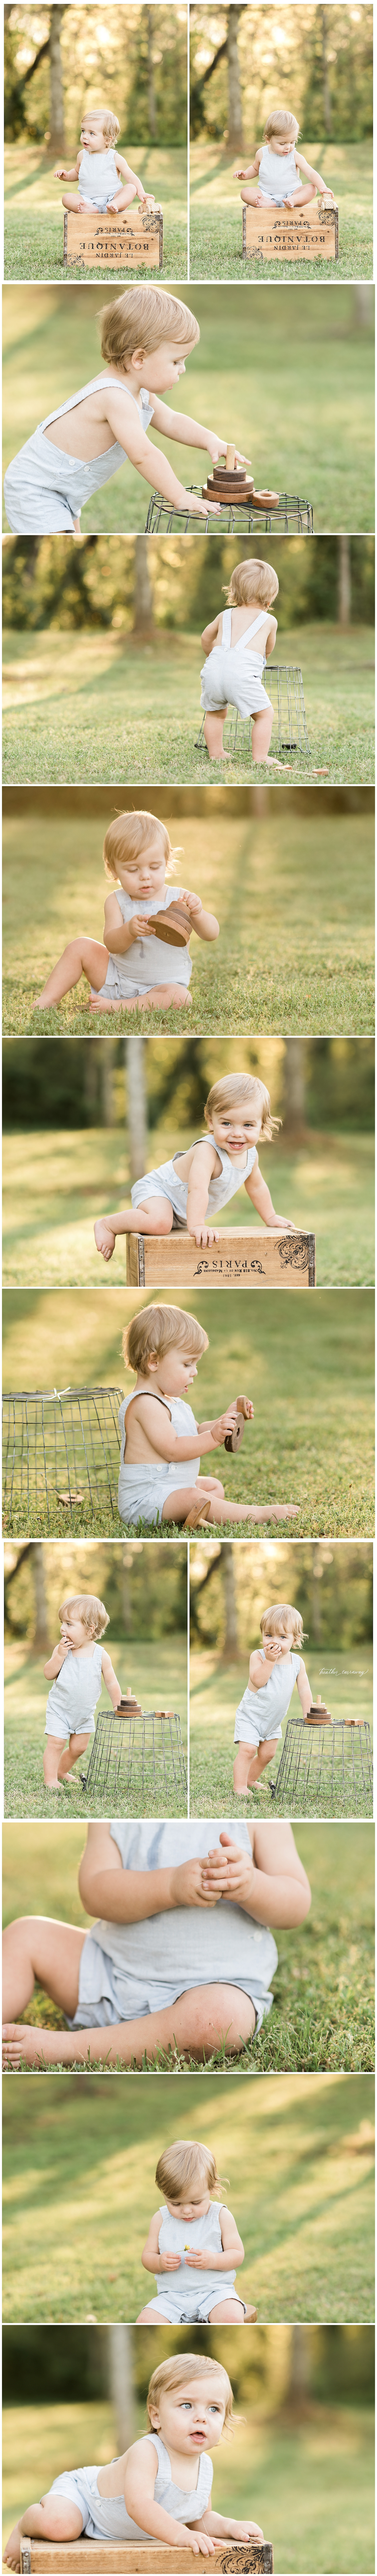 Atlanta Baby Photographer | Heather Carraway Photography